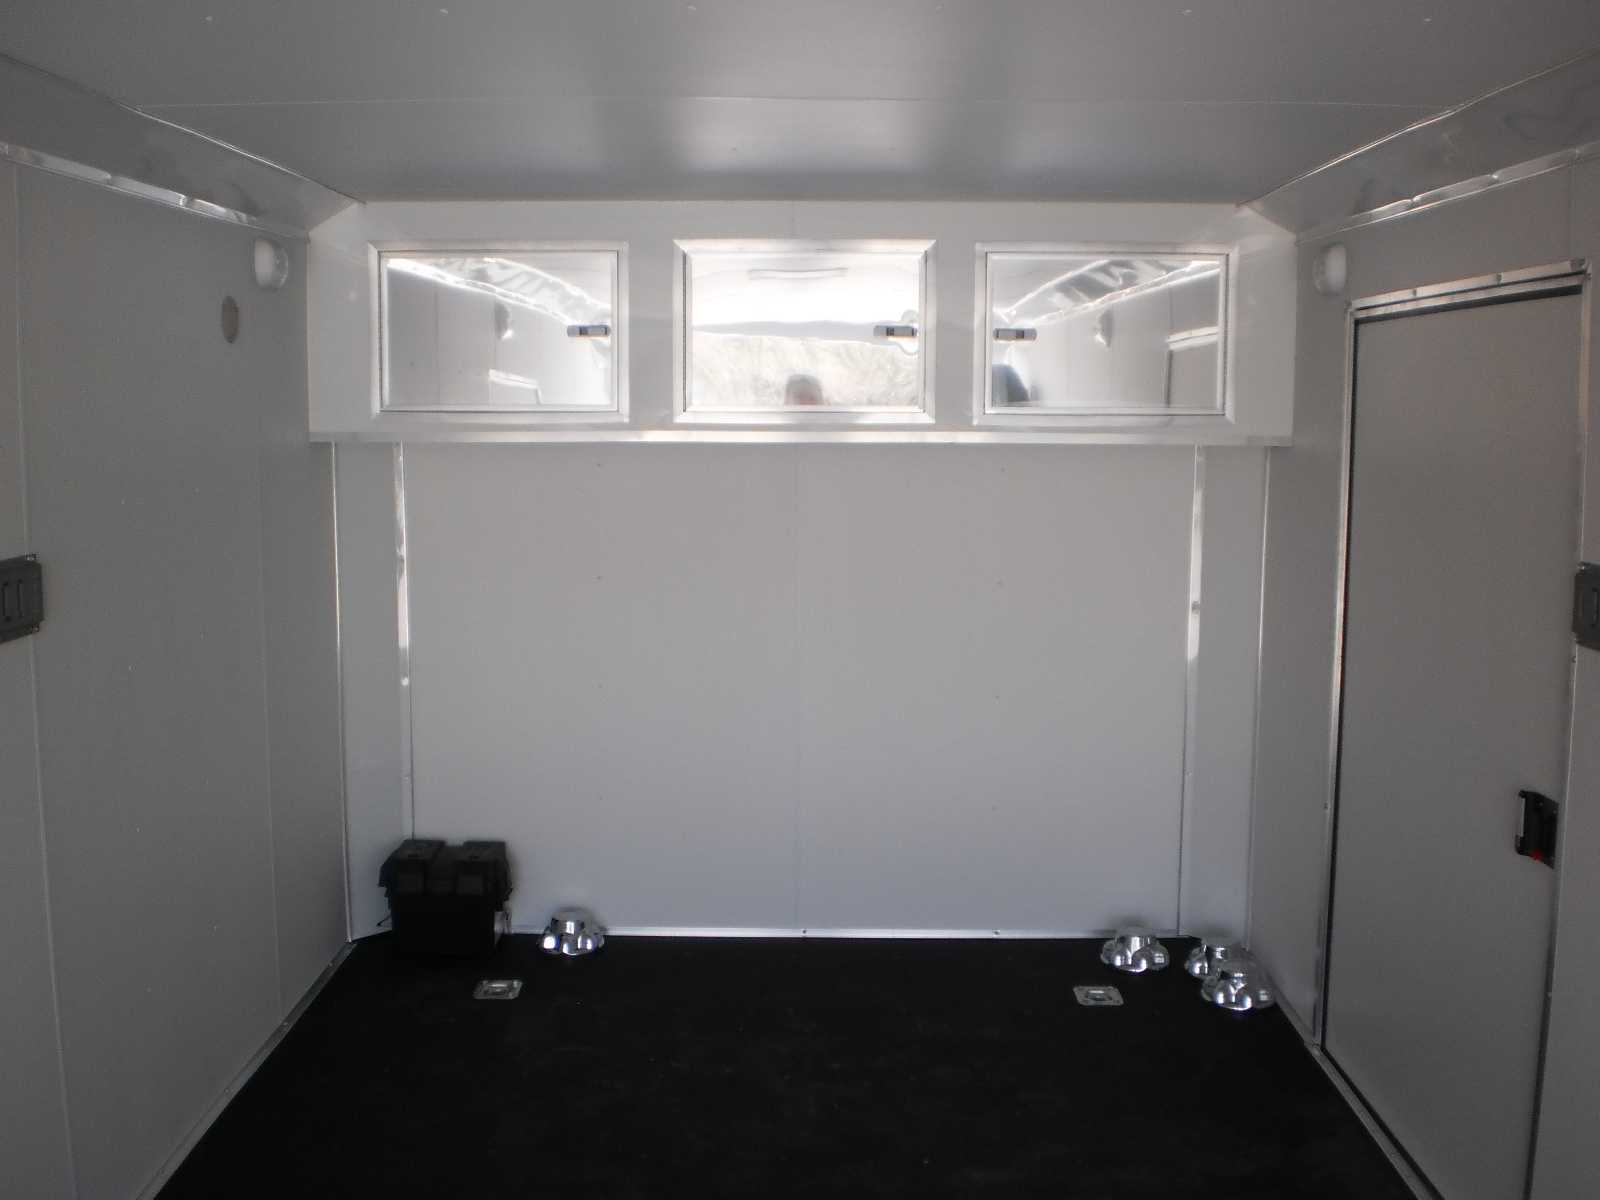 R and p carriages enclosed trailer cabinet options flat front three door cabinet sciox Choice Image